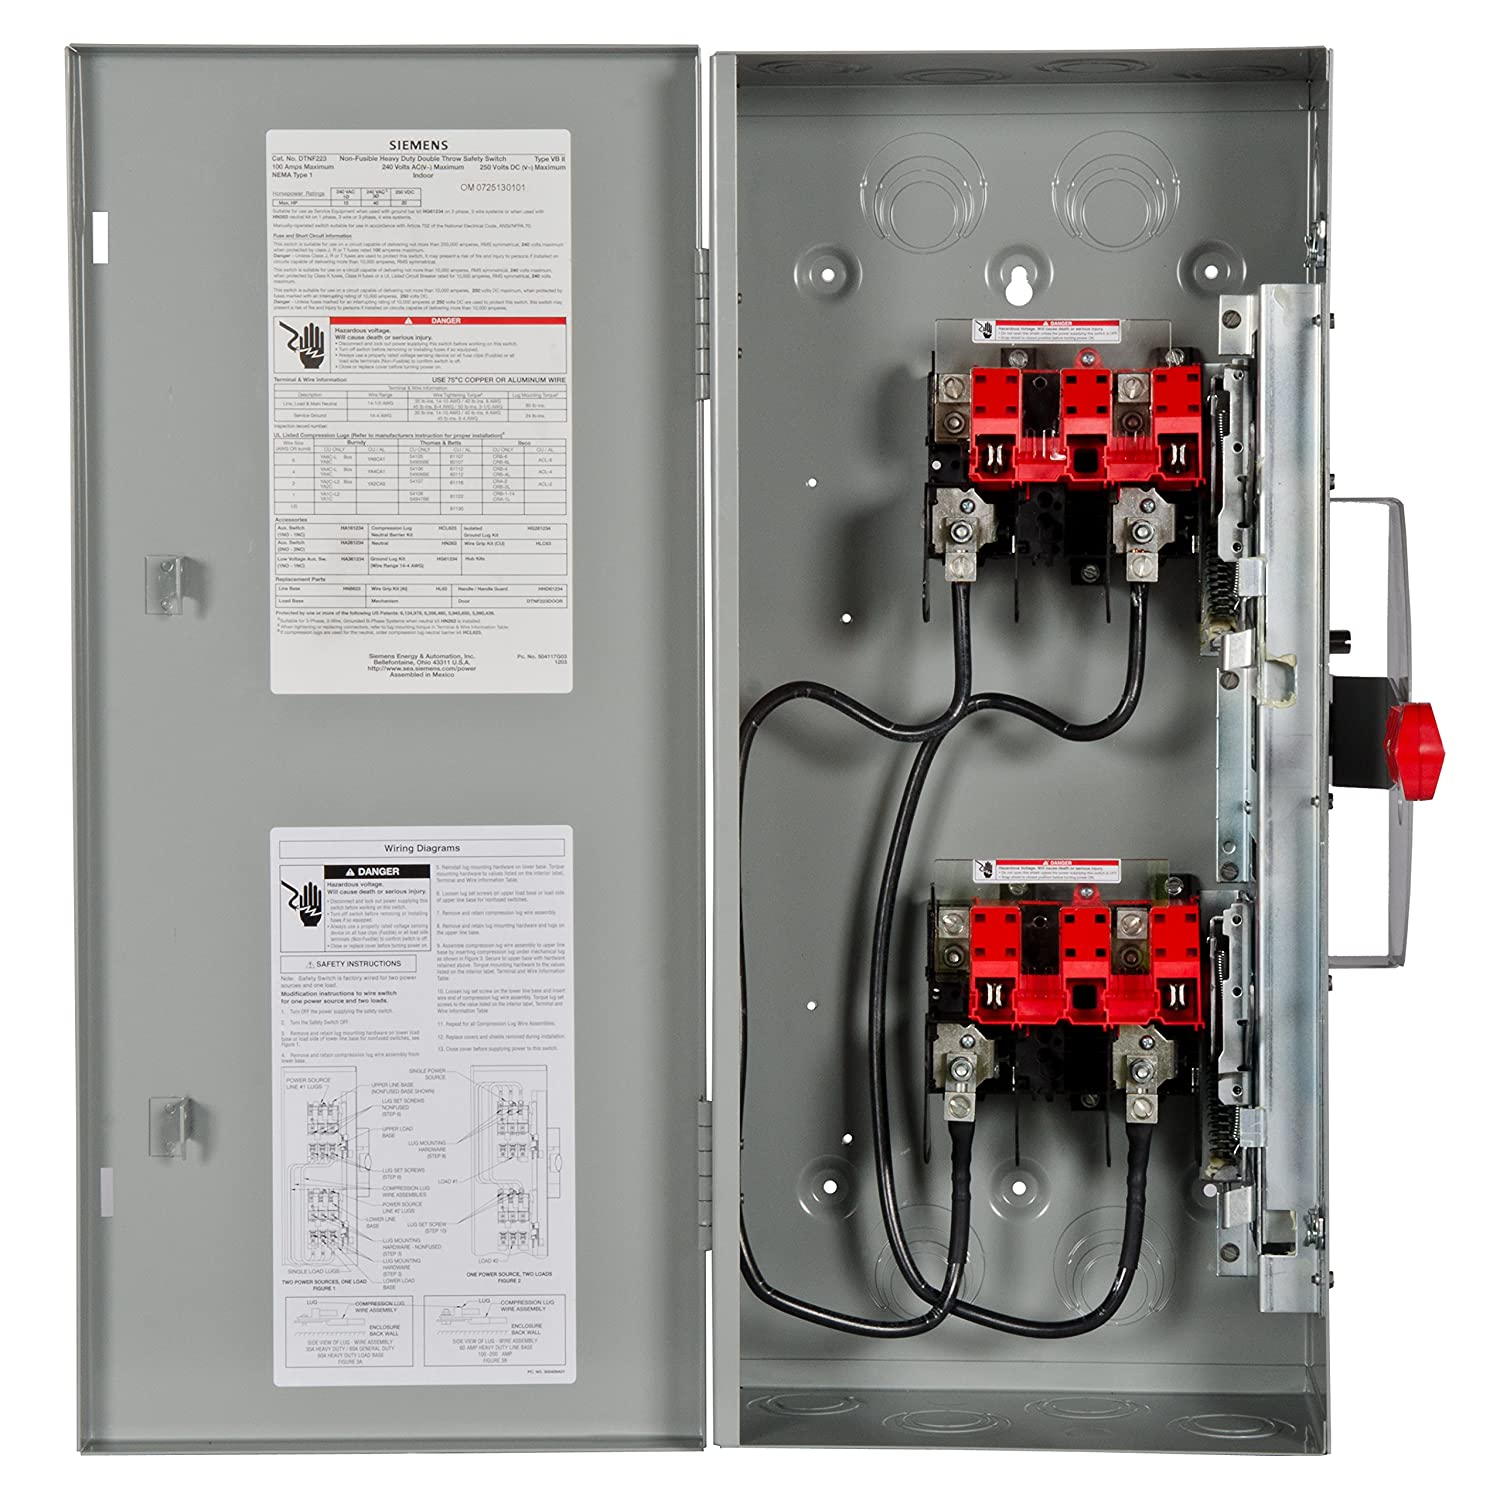 Siemens Dtnf223 100 Amp 2 Pole 240 Volt 2w Non Fused Double Throw 250 Wiring Diagram Safety Switches